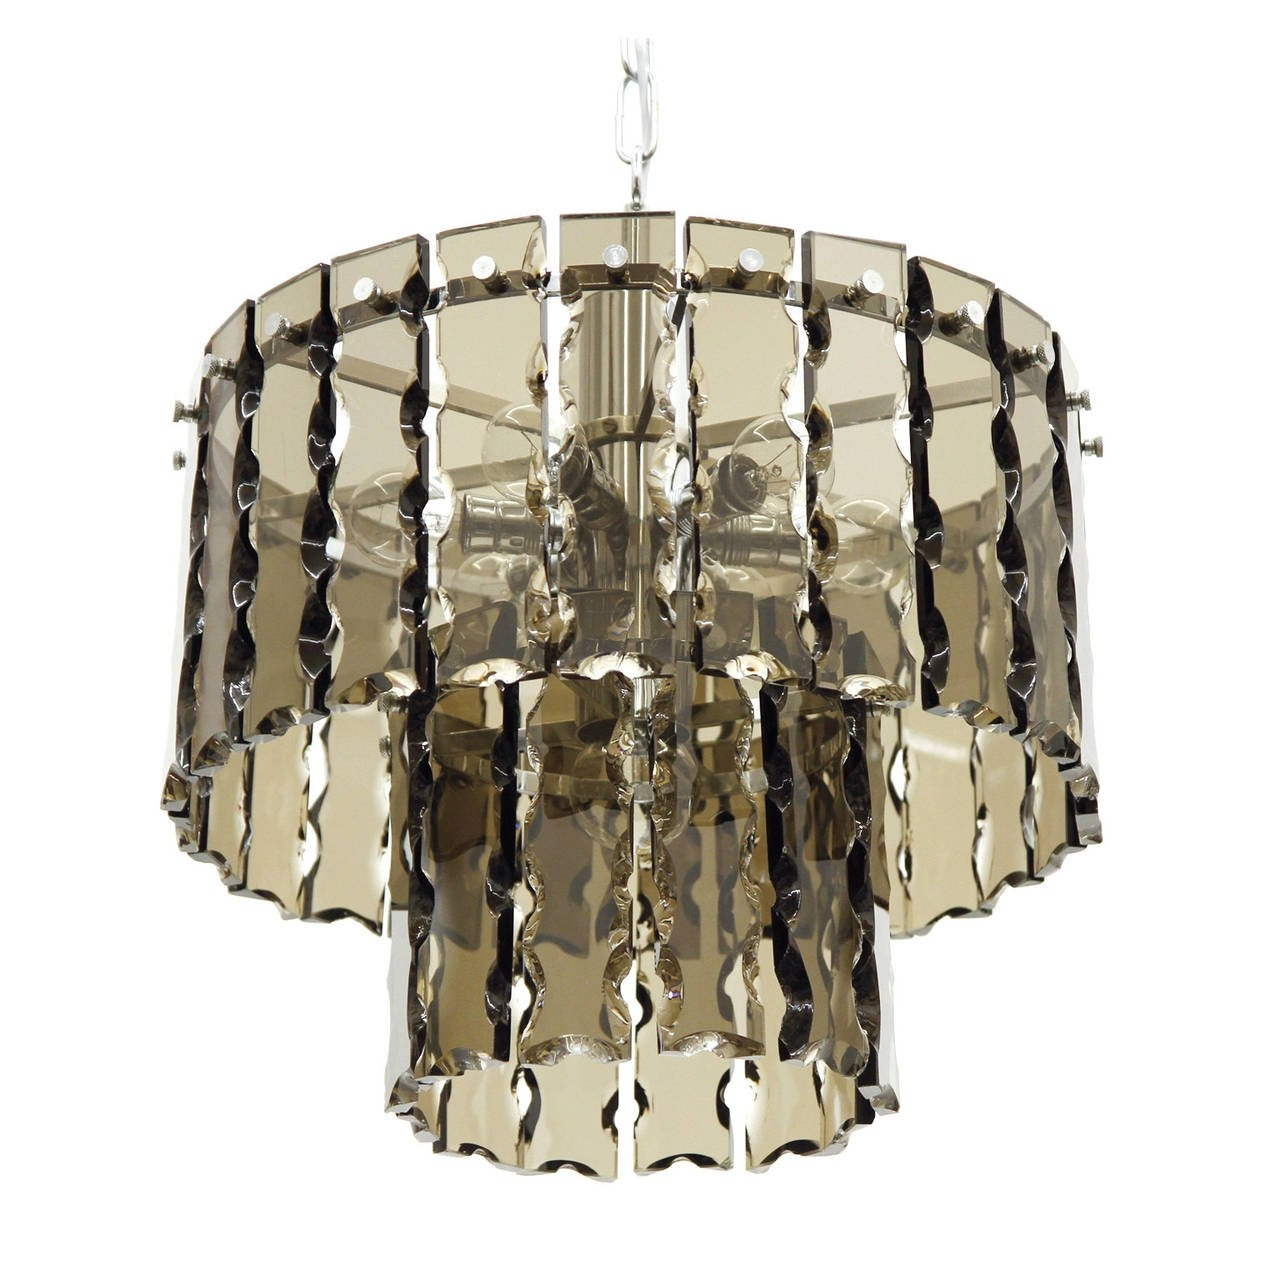 Fontana Arte Style Two Tier Smoke Glass Chandelier For Sale At 1stdibs Within Smoked Glass Chandelier (Image 7 of 15)